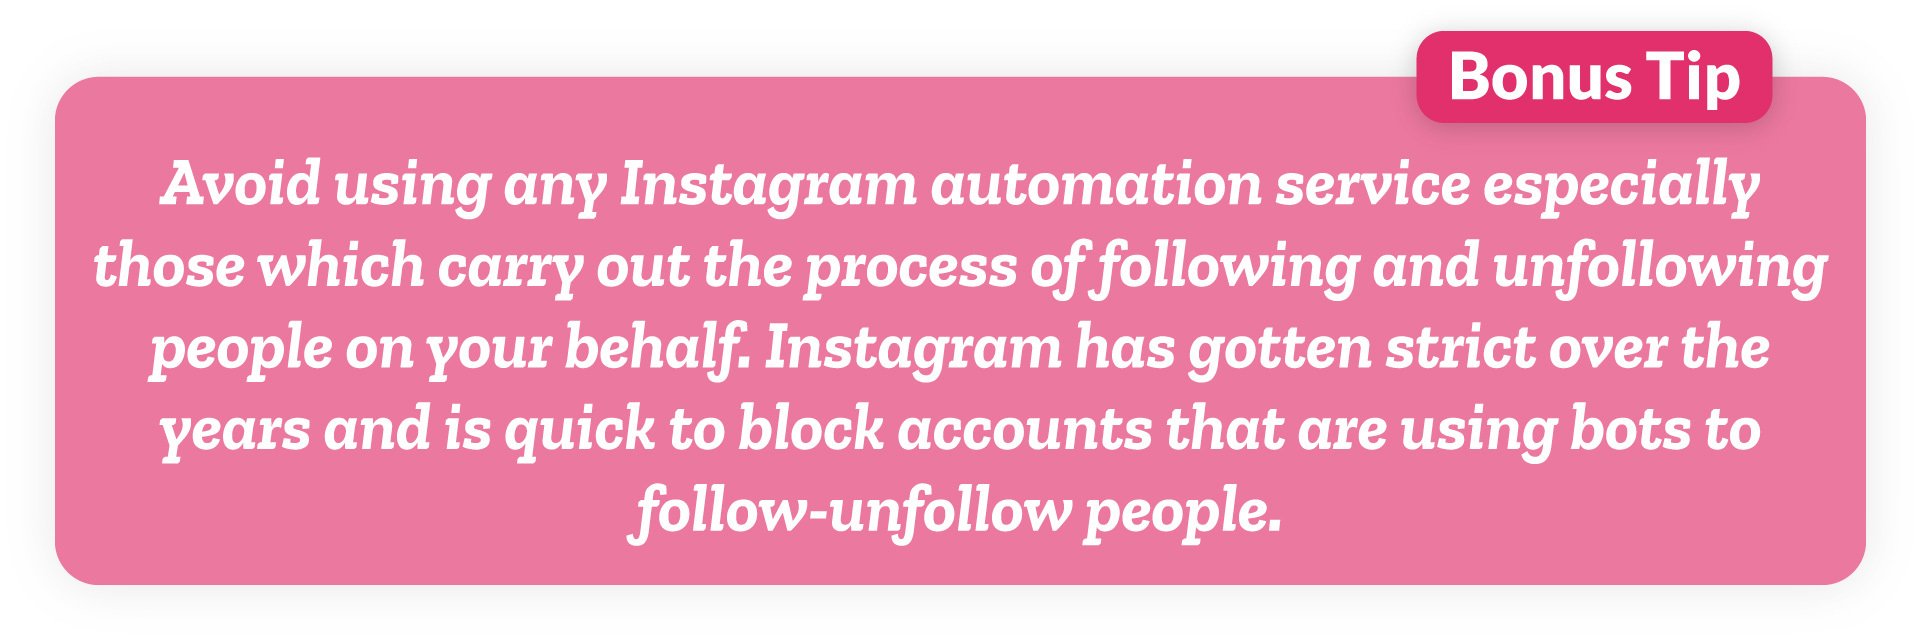 Instagram Marketing Hacks